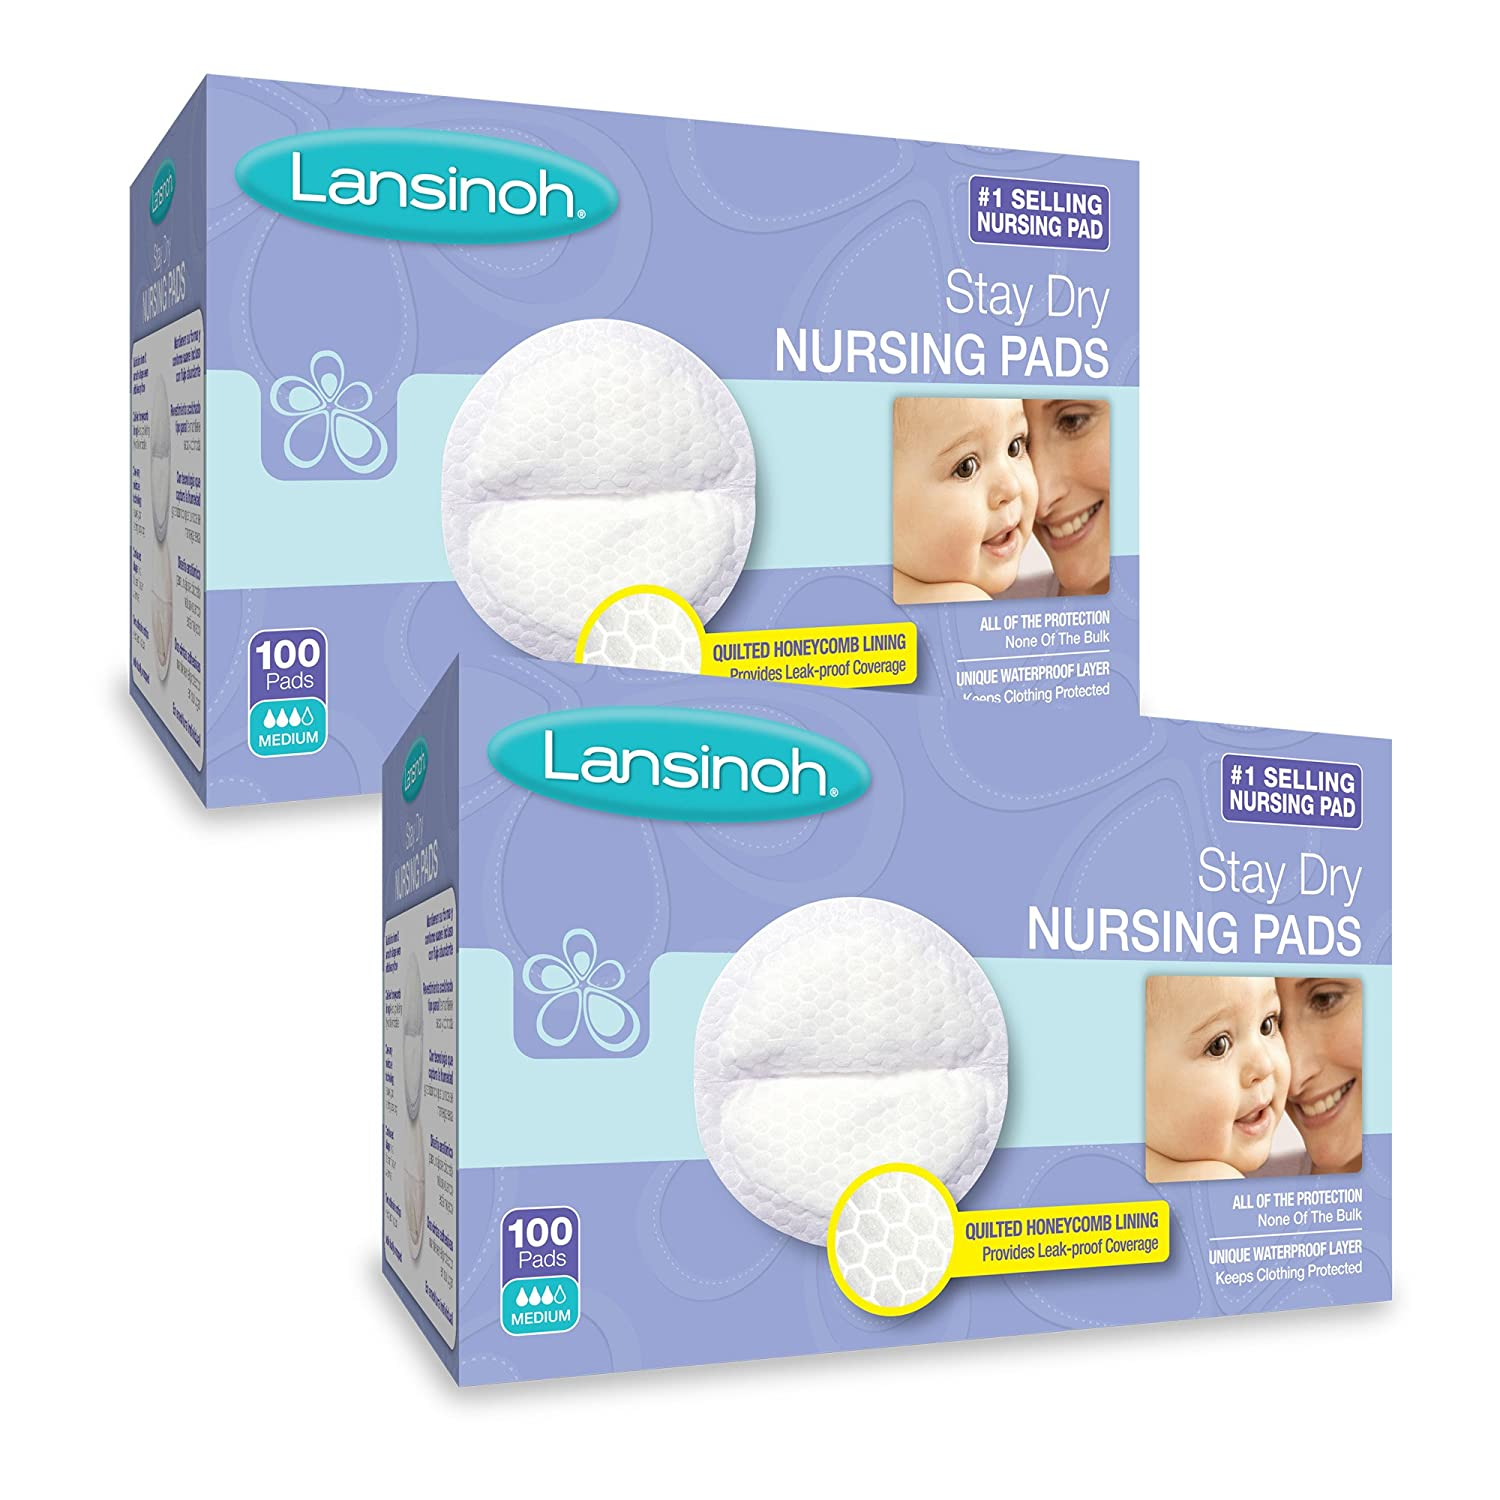 Lansinoh Nursing Pads Day & Night Multipack, Pack of 32 (20 Stay Dry Pads & 12 Ultimate Protection) Disposable Breast Pads Lansinoh Laboratories 20375